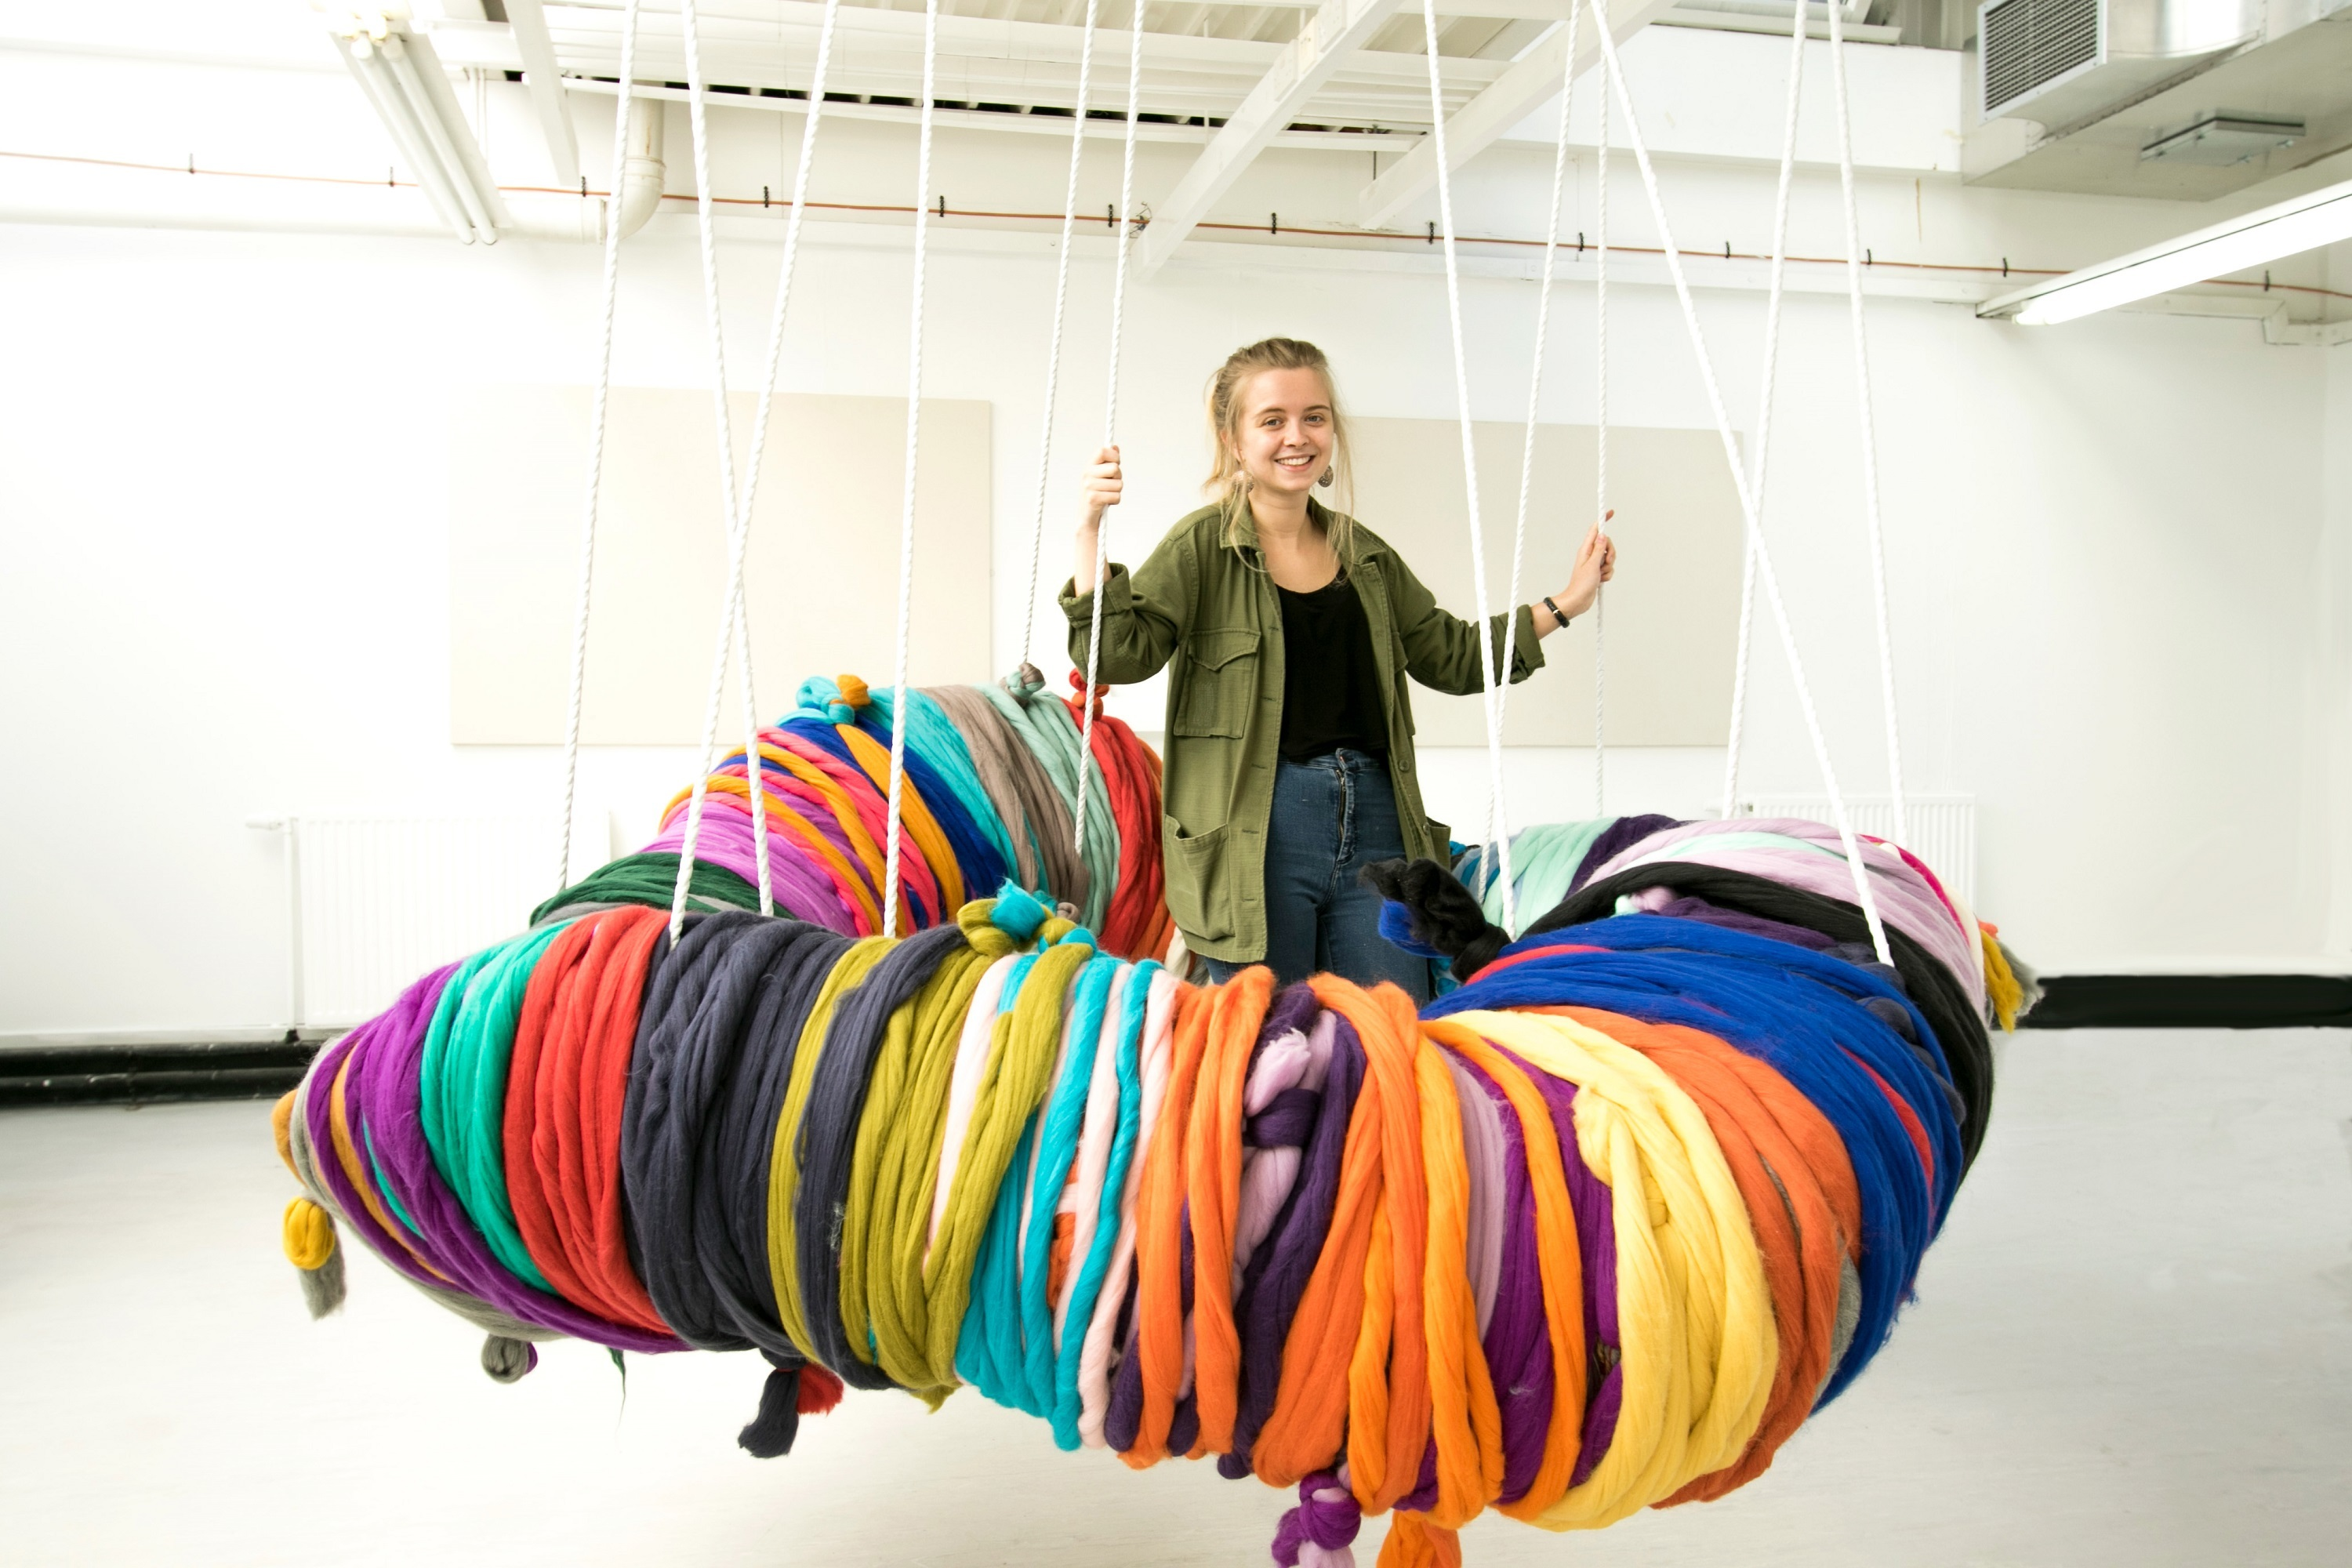 Shannon Murray with the giant pom-pom she is collaborating with the public on for her Degree Show exhibit.